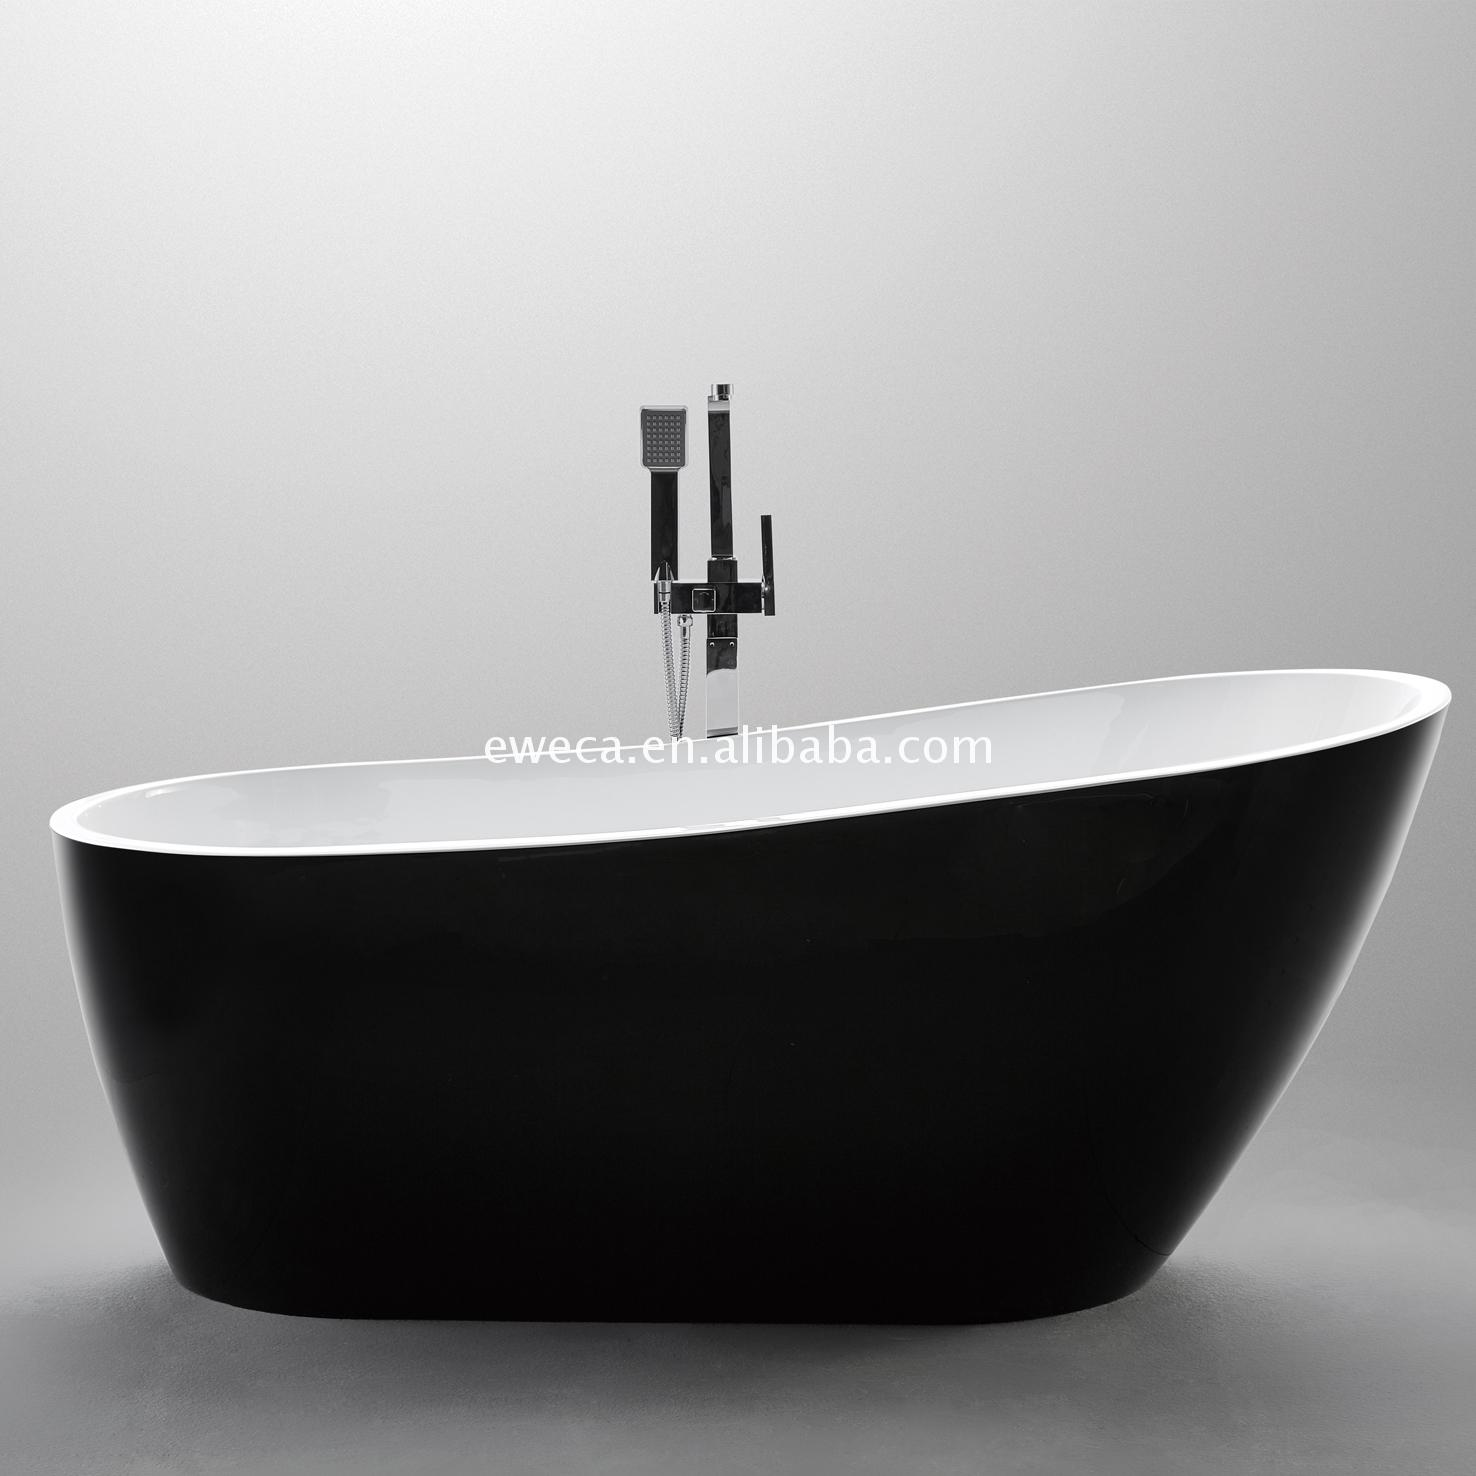 Cheap Copper Bathtubs, Cheap Copper Bathtubs Suppliers and ...